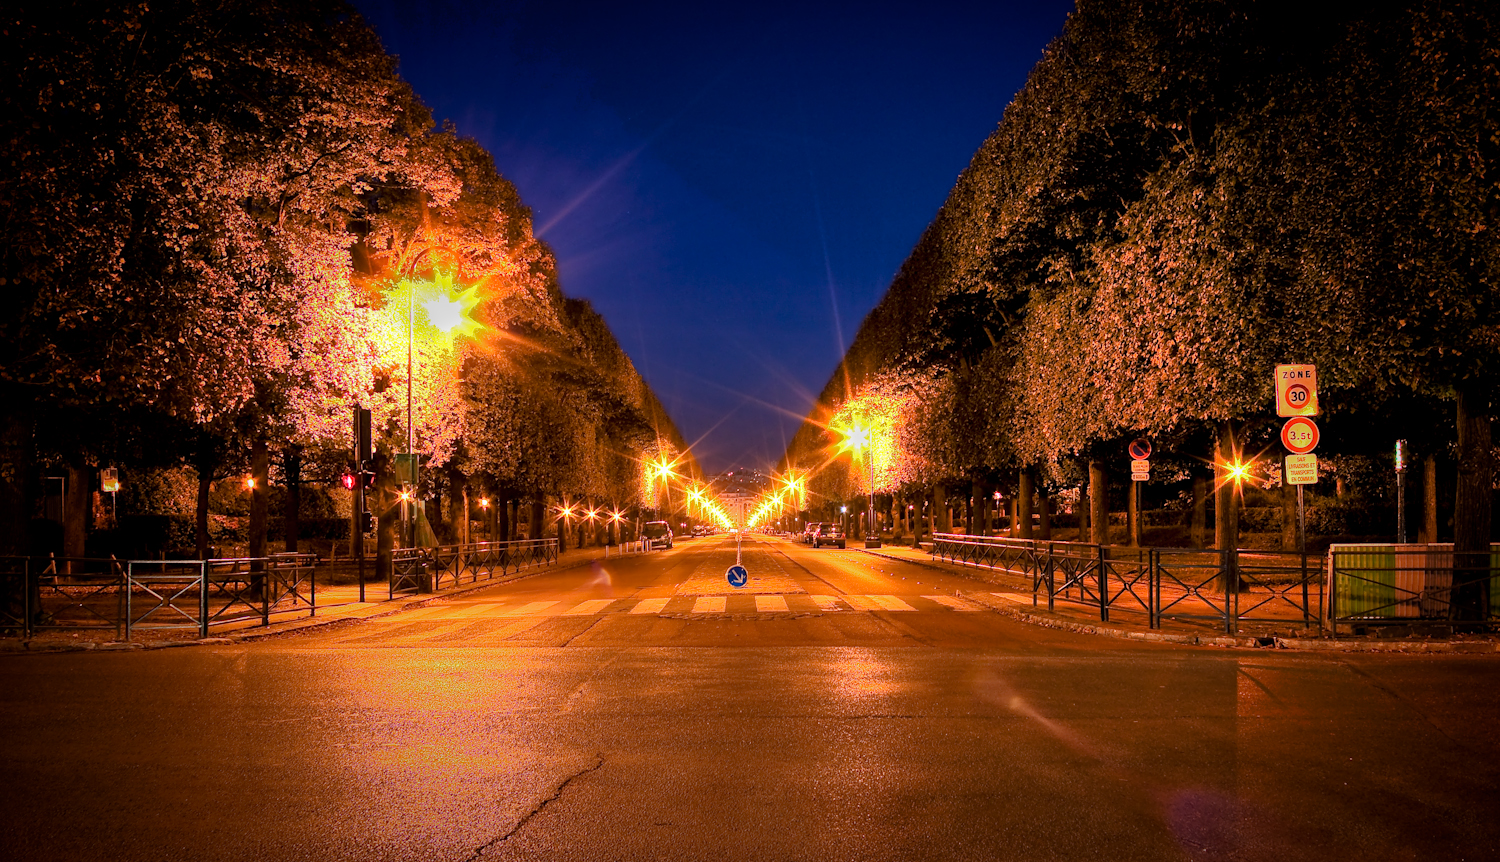 Street leading to Parc de Sceaux entrance